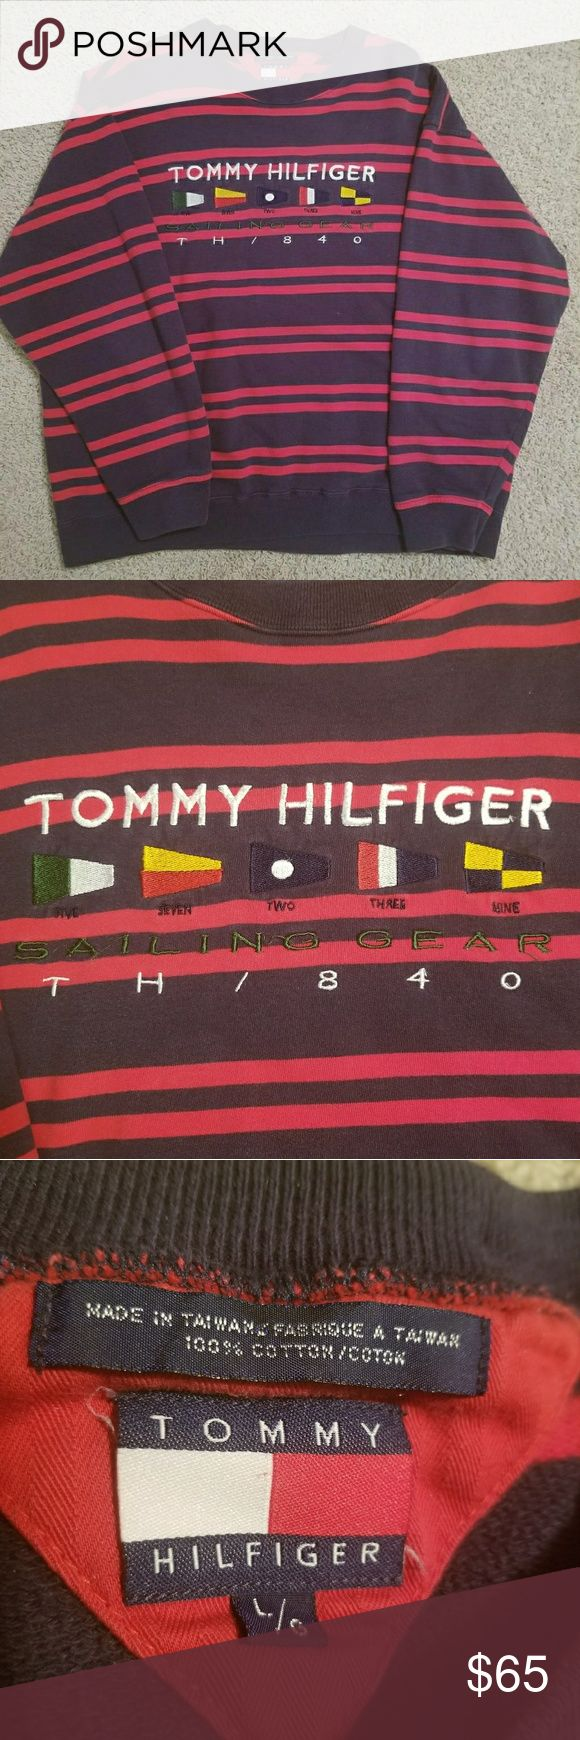 Vintage Tommy Hilfiger Sailing Gear Spell out crew RARE vintage Tommy Hilfiger Sailing Gear crewneck sweatshirt. Big logo spell out! These are really hard to come by, and now it's your chance to own one! Sz Large   Don't sleep on this one, will sell fast. It's cross posted Tommy Hilfiger Sweaters Crewneck